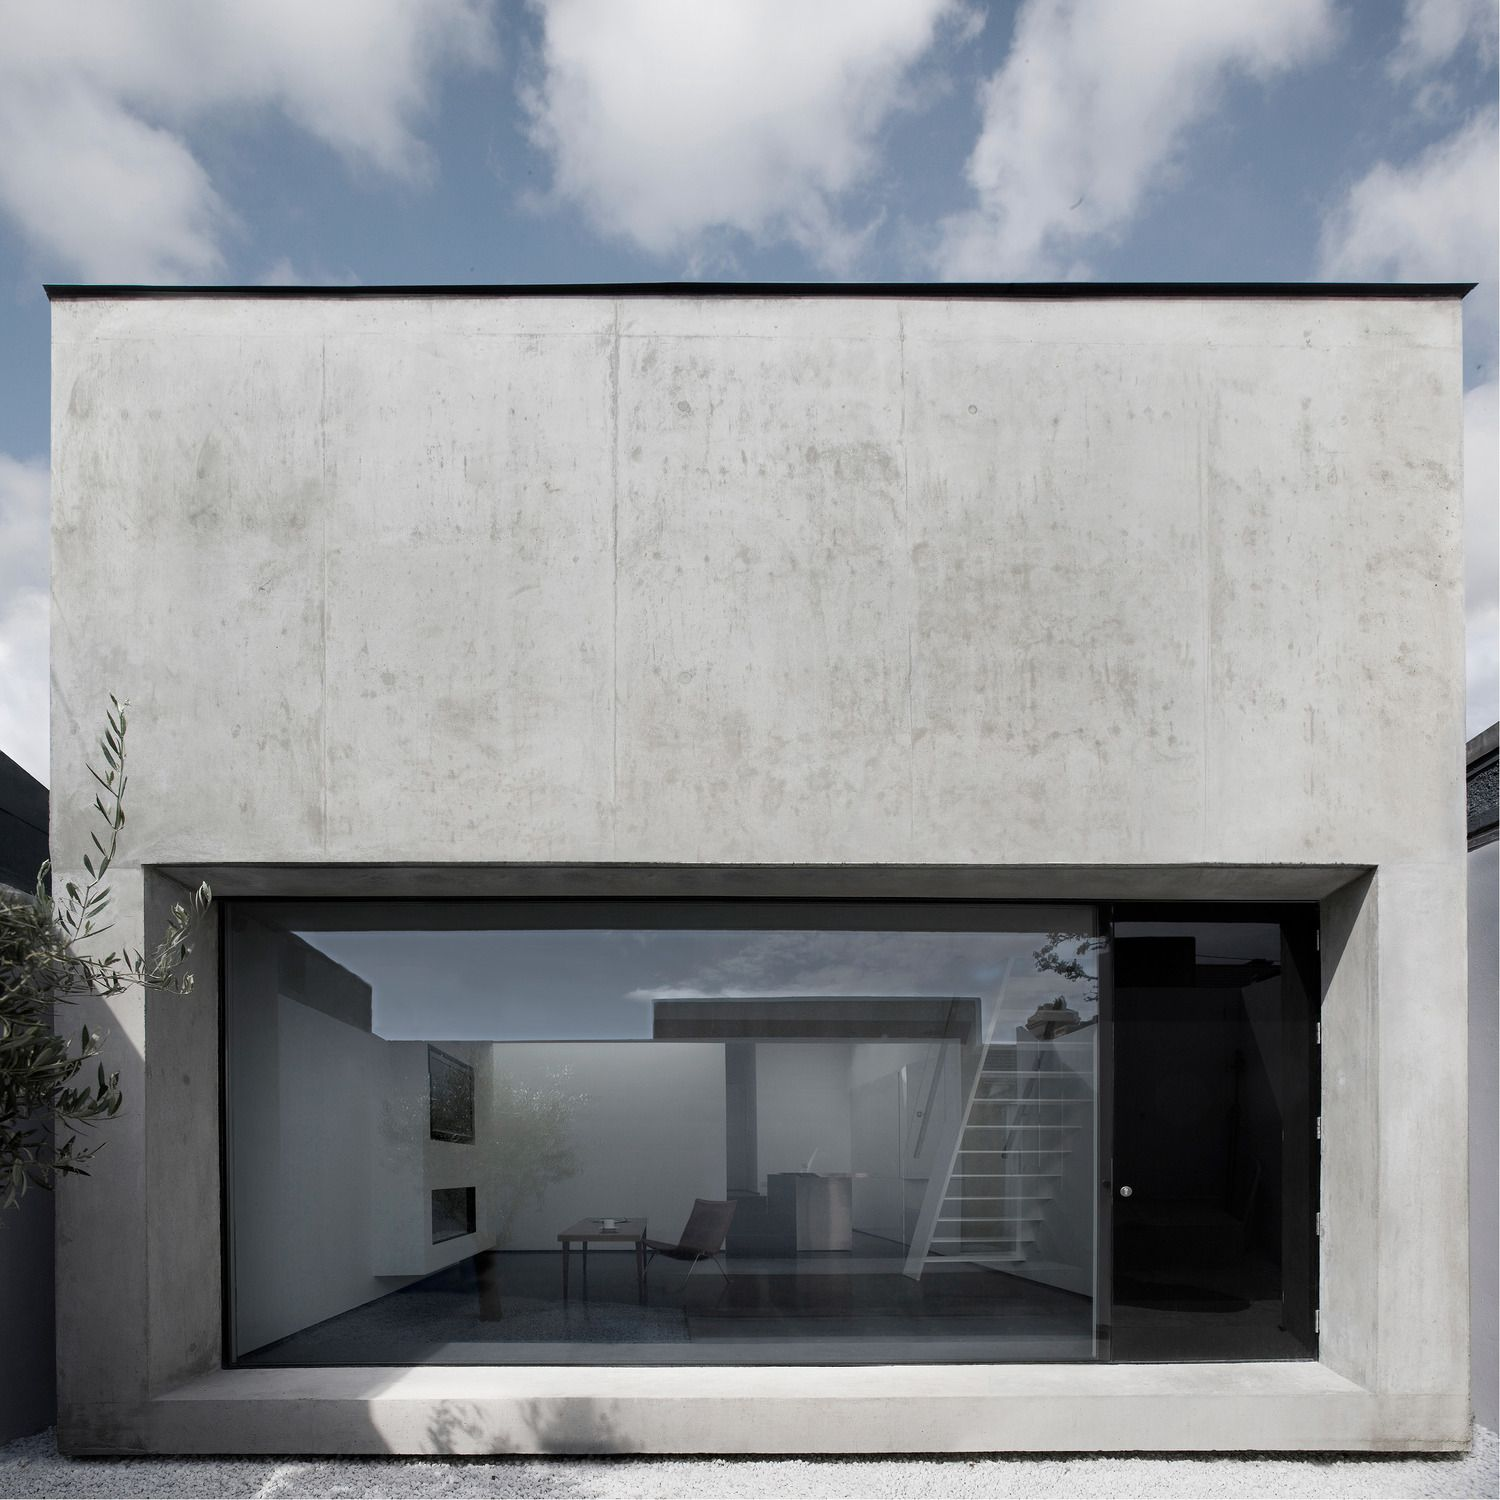 Carysfort Road. ODOS architects Cottage extension